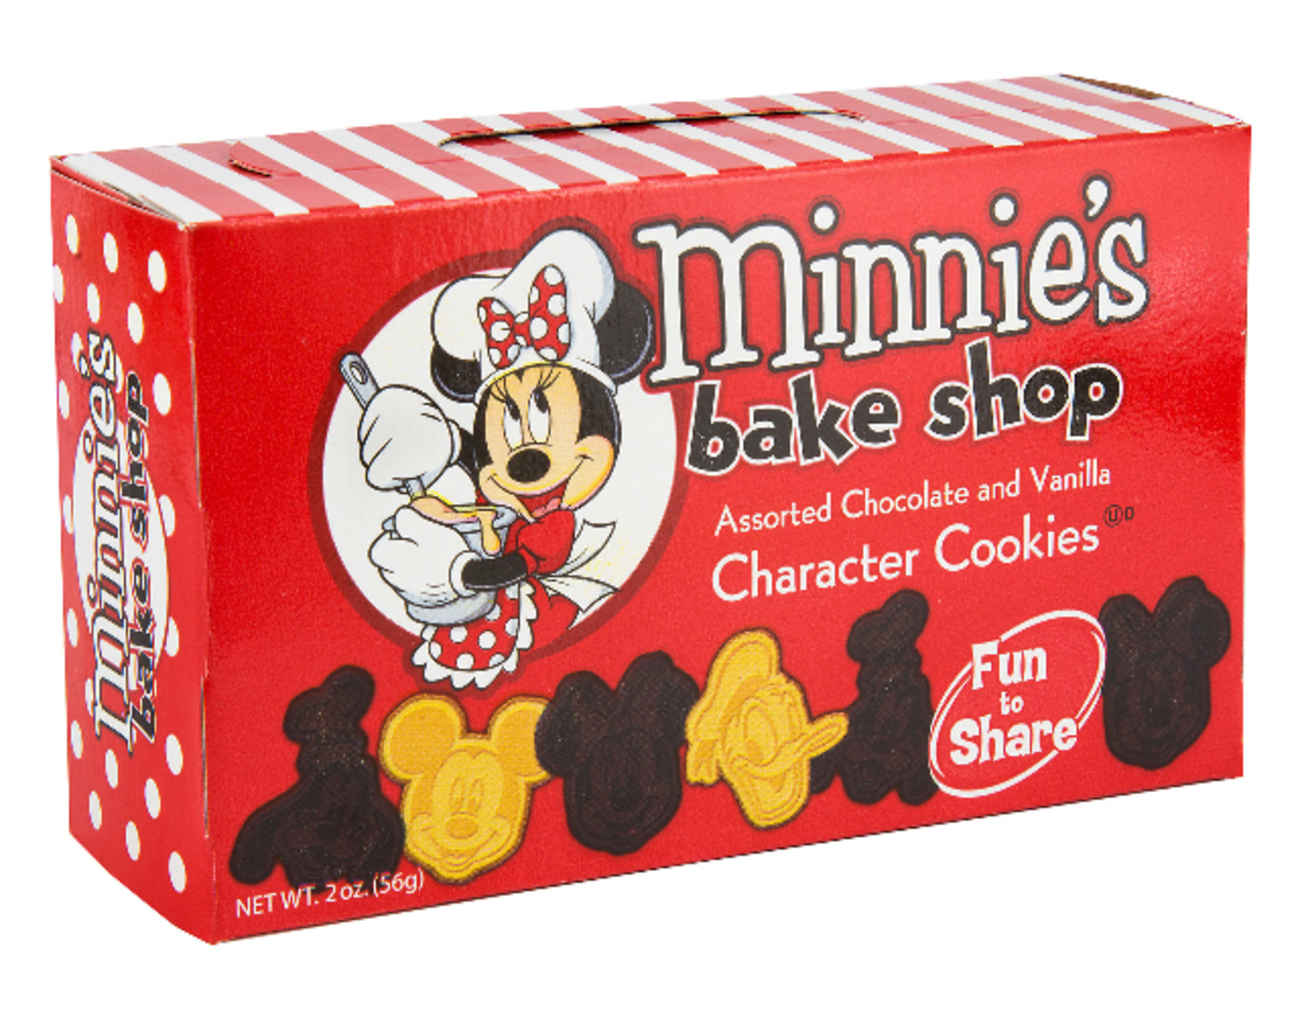 Minnies bake shop